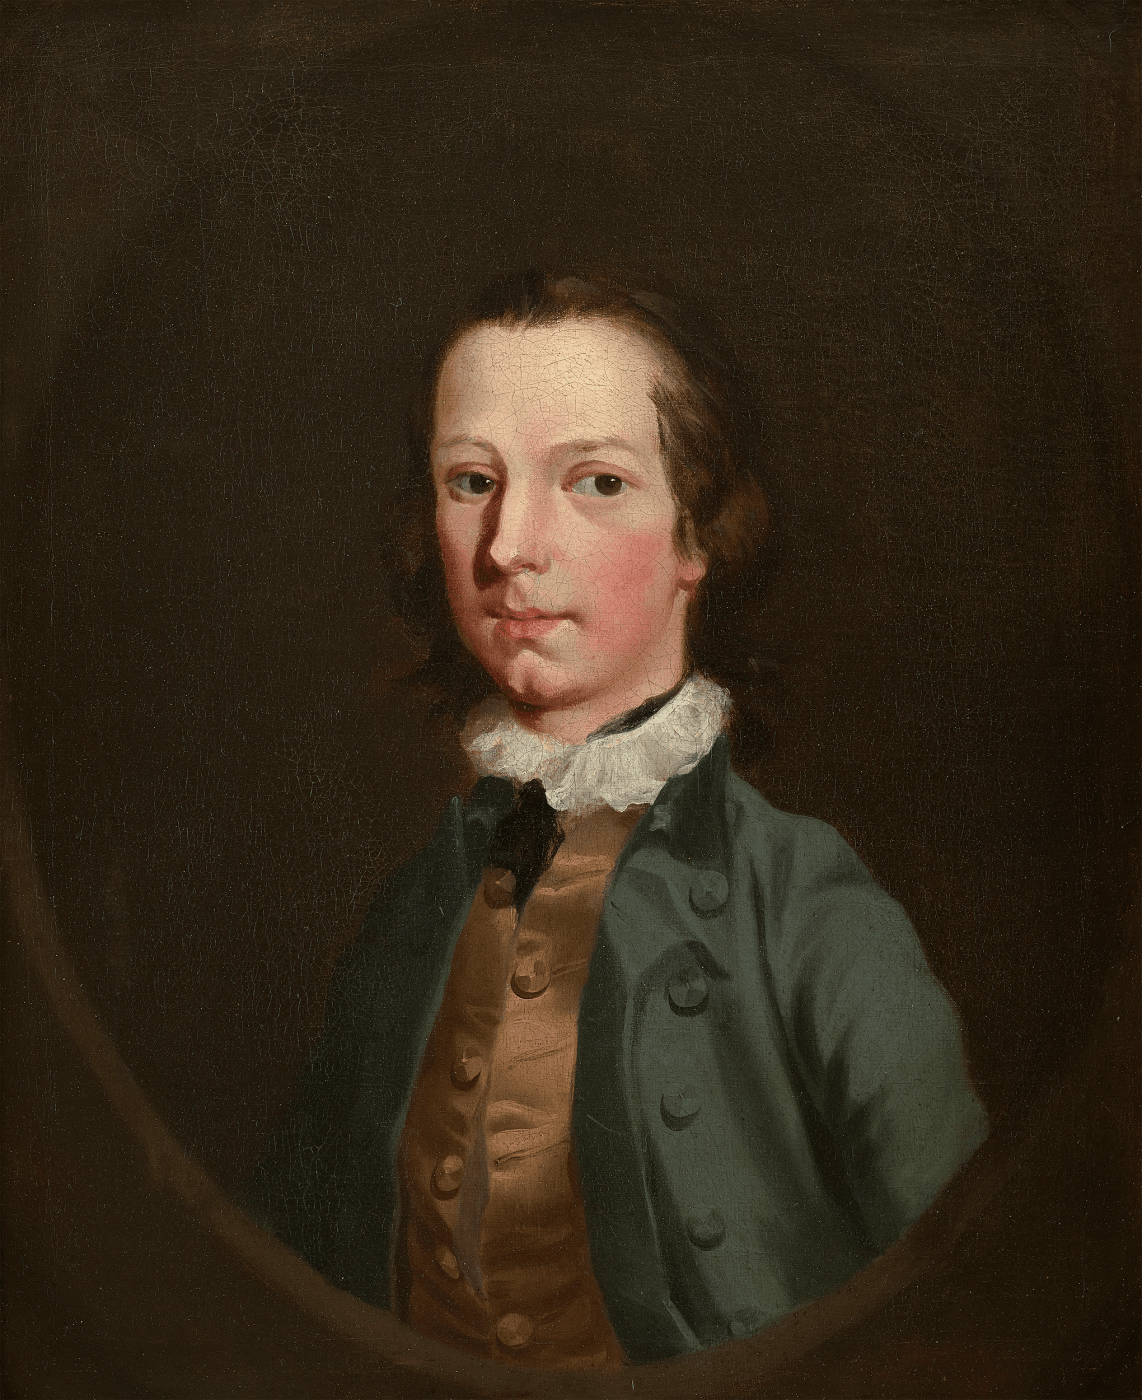 Portrait of a boy by Richard Wilson (RA), the sitter wears a green coat, white ruff and brown waistcoat against a black background